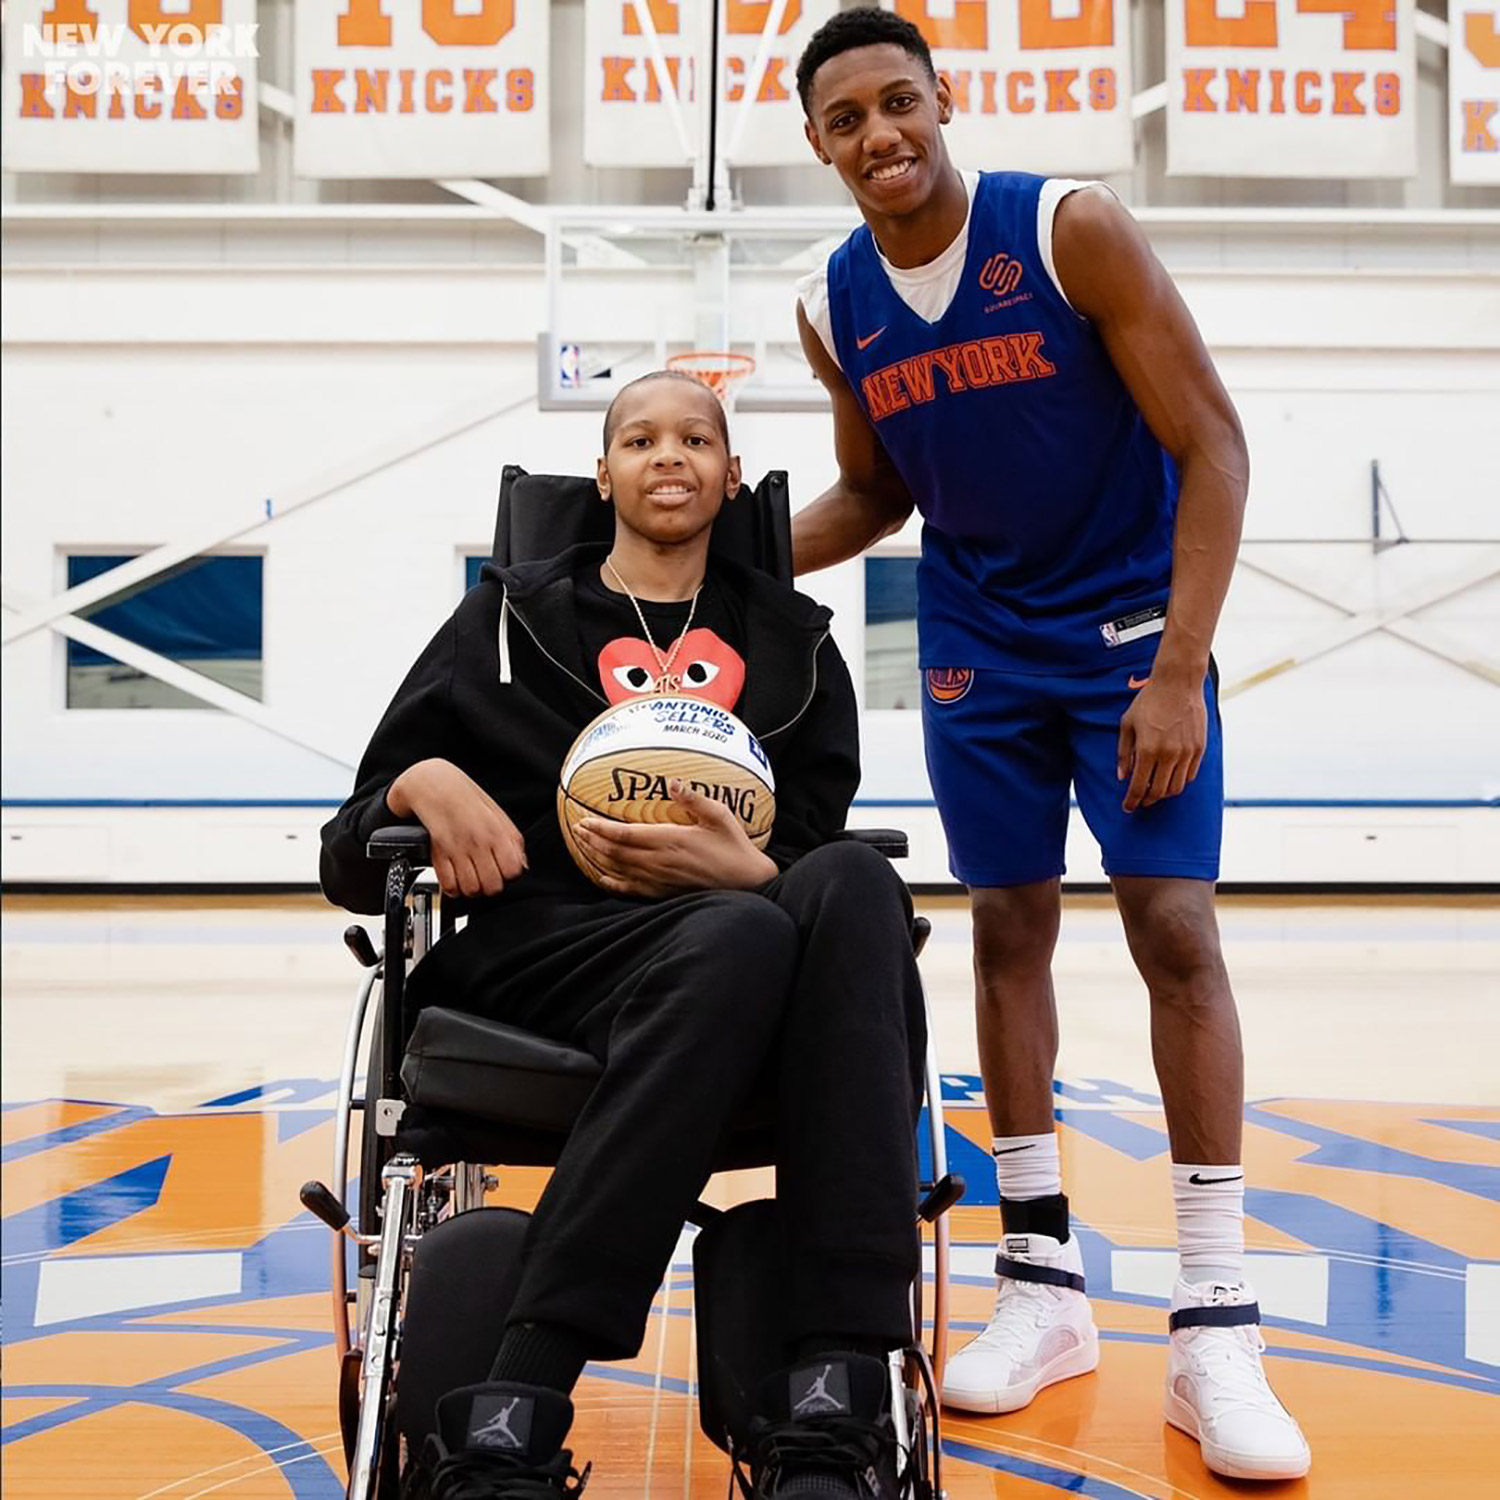 Teen Basketball Star Diagnosed with Brain Tumor Meets His Duke University Hero, RJ Barrett